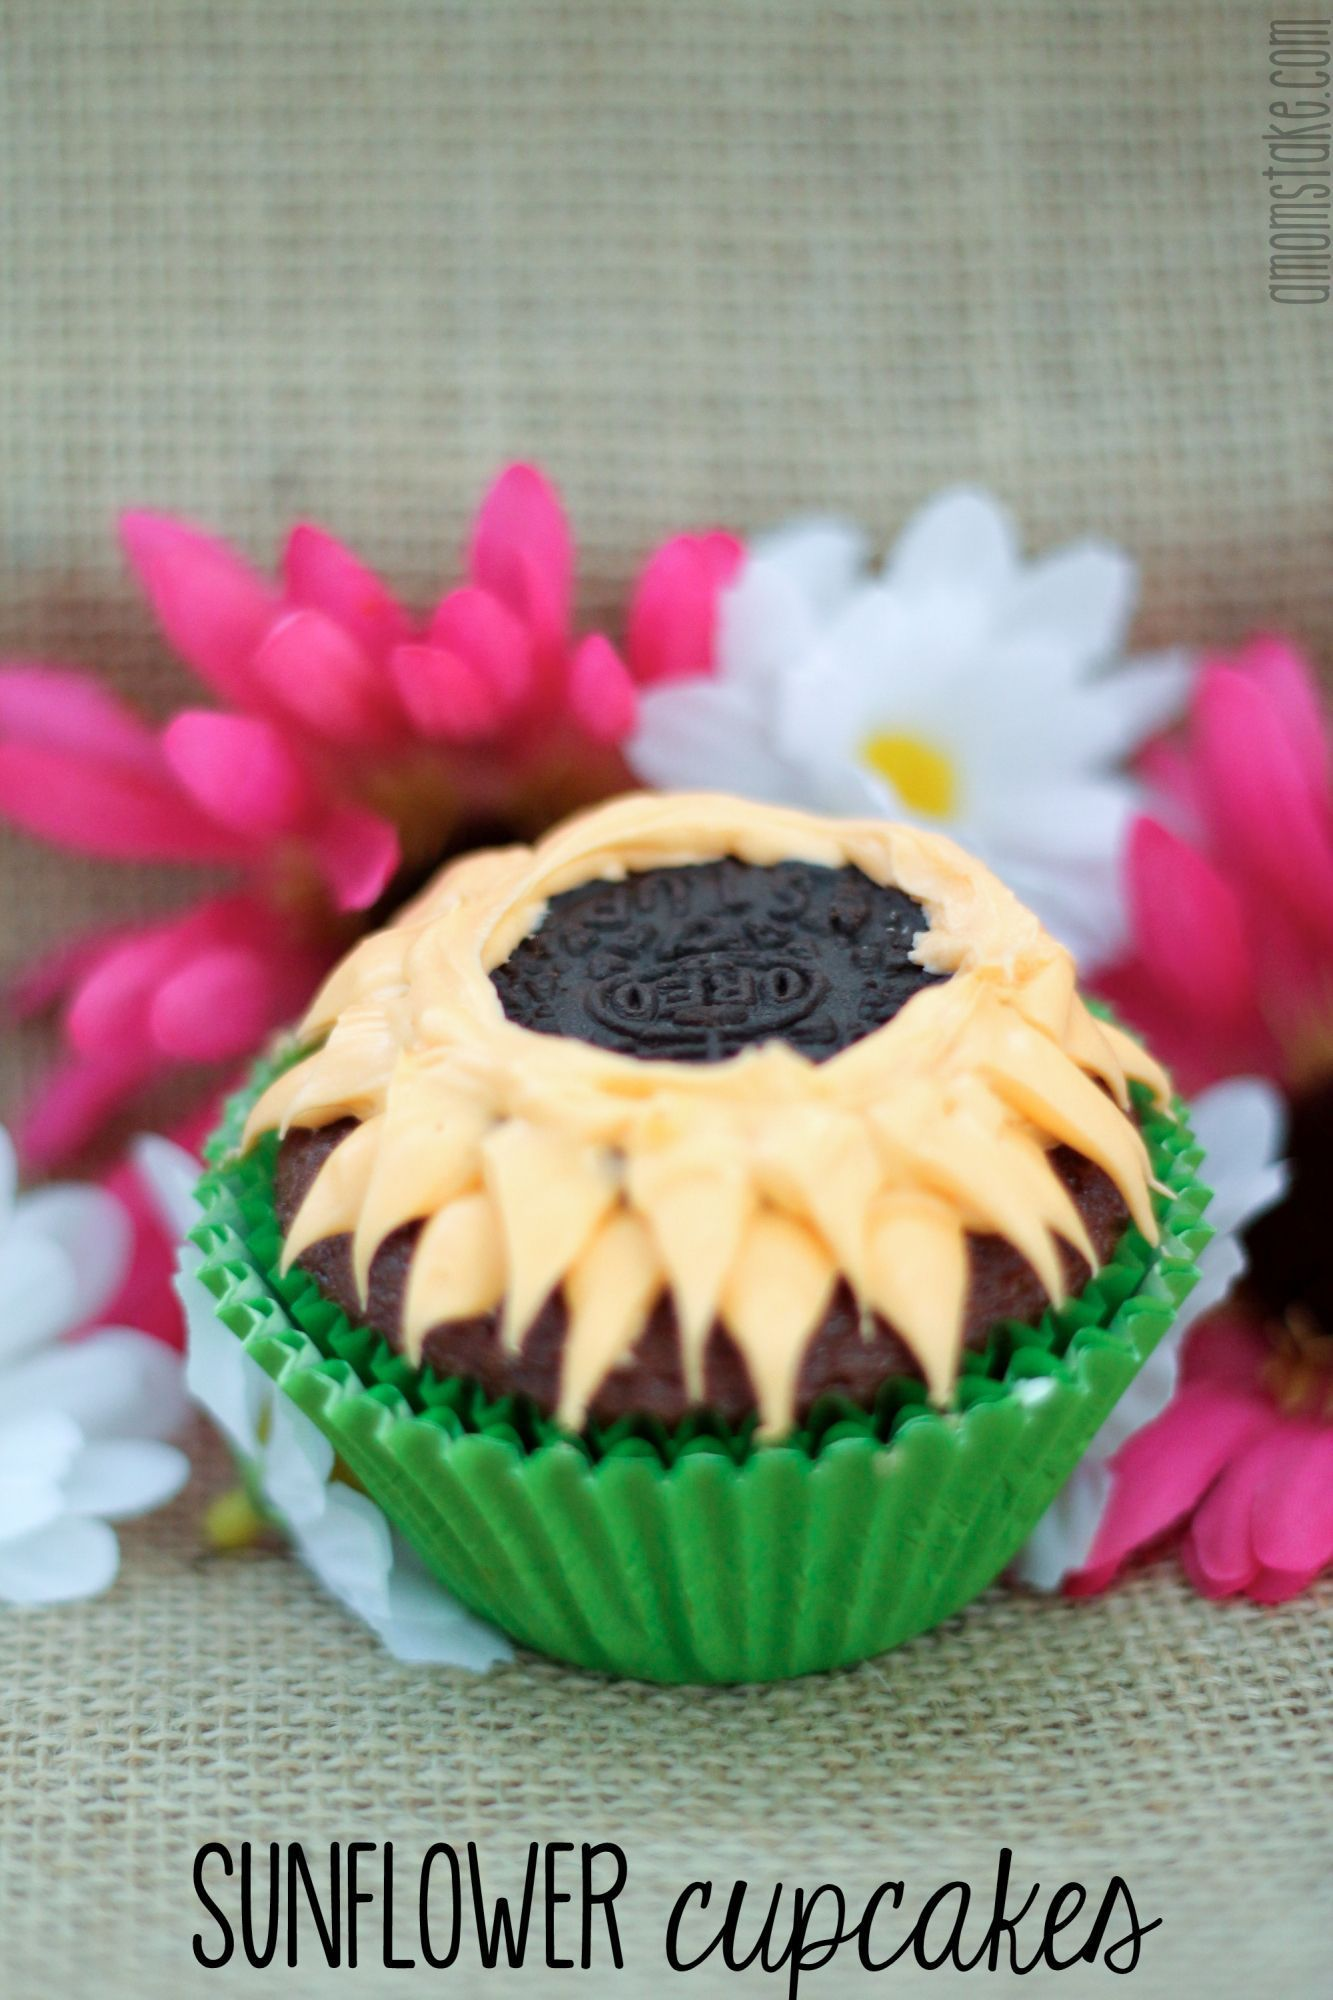 Sunflower #Cupcakes easy and cute for #Spring #sunflowercupcakes Sunflower #Cupcakes easy and cute for #Spring #sunflowercupcakes Sunflower #Cupcakes easy and cute for #Spring #sunflowercupcakes Sunflower #Cupcakes easy and cute for #Spring #sunflowercupcakes